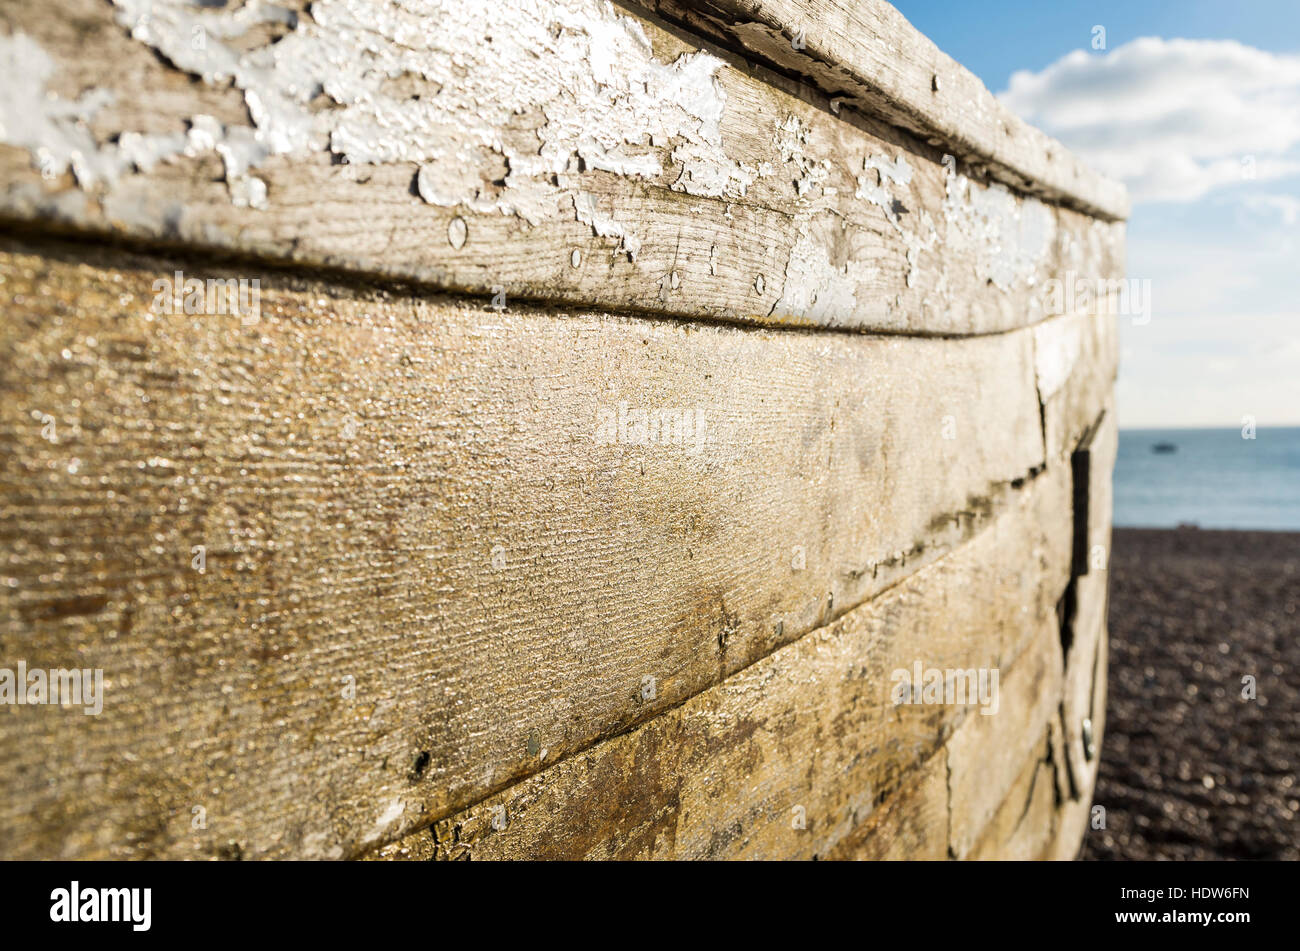 View along the side of a decaying old derelict wooden fishing rowing boat moored on the beach - Stock Image